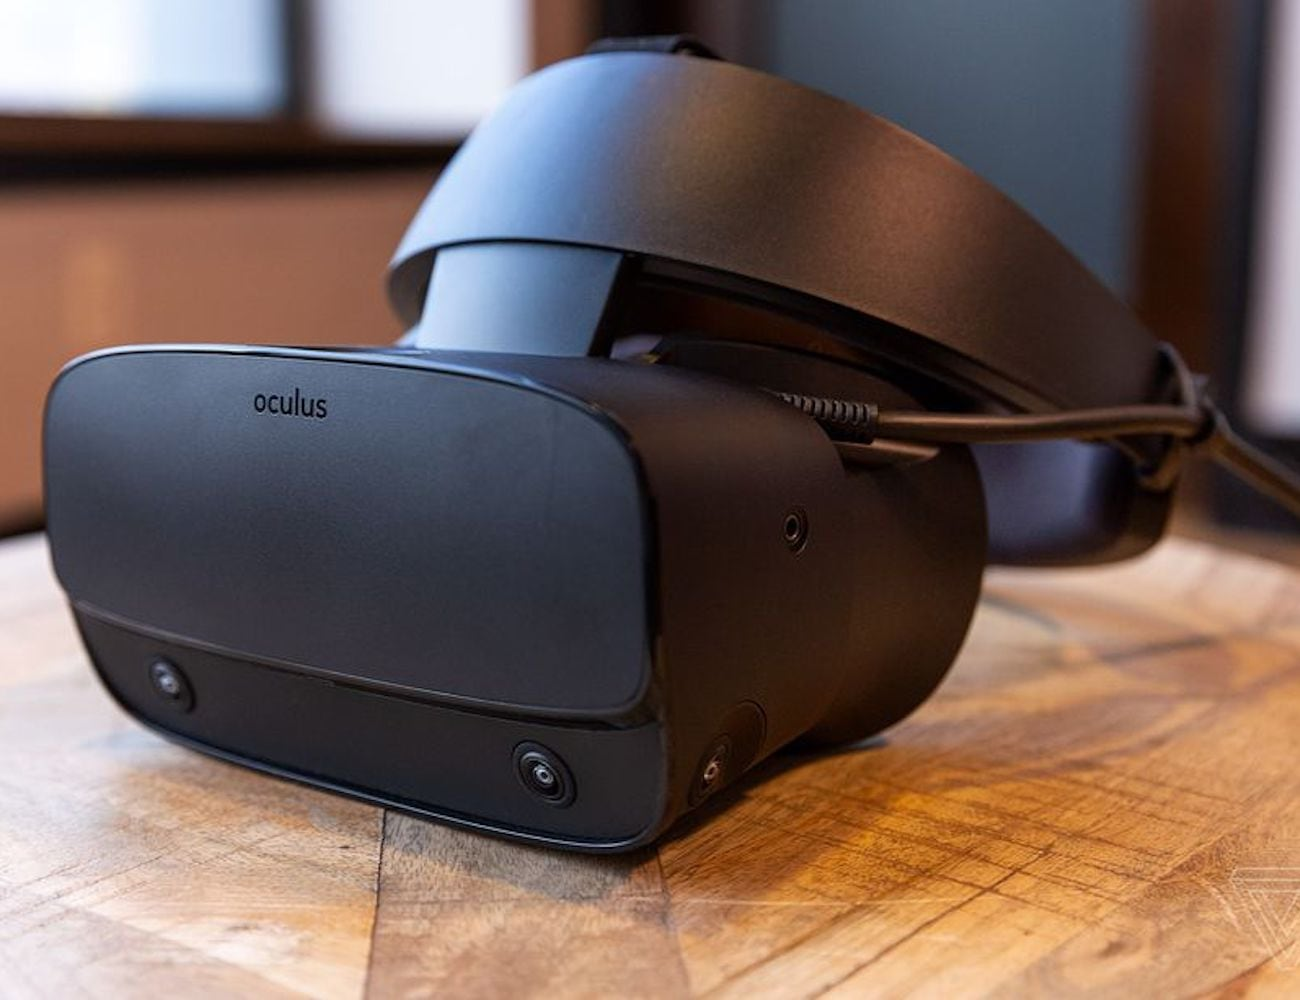 Oculus Rift S High-Resolution VR Headset translates your movements without sensors